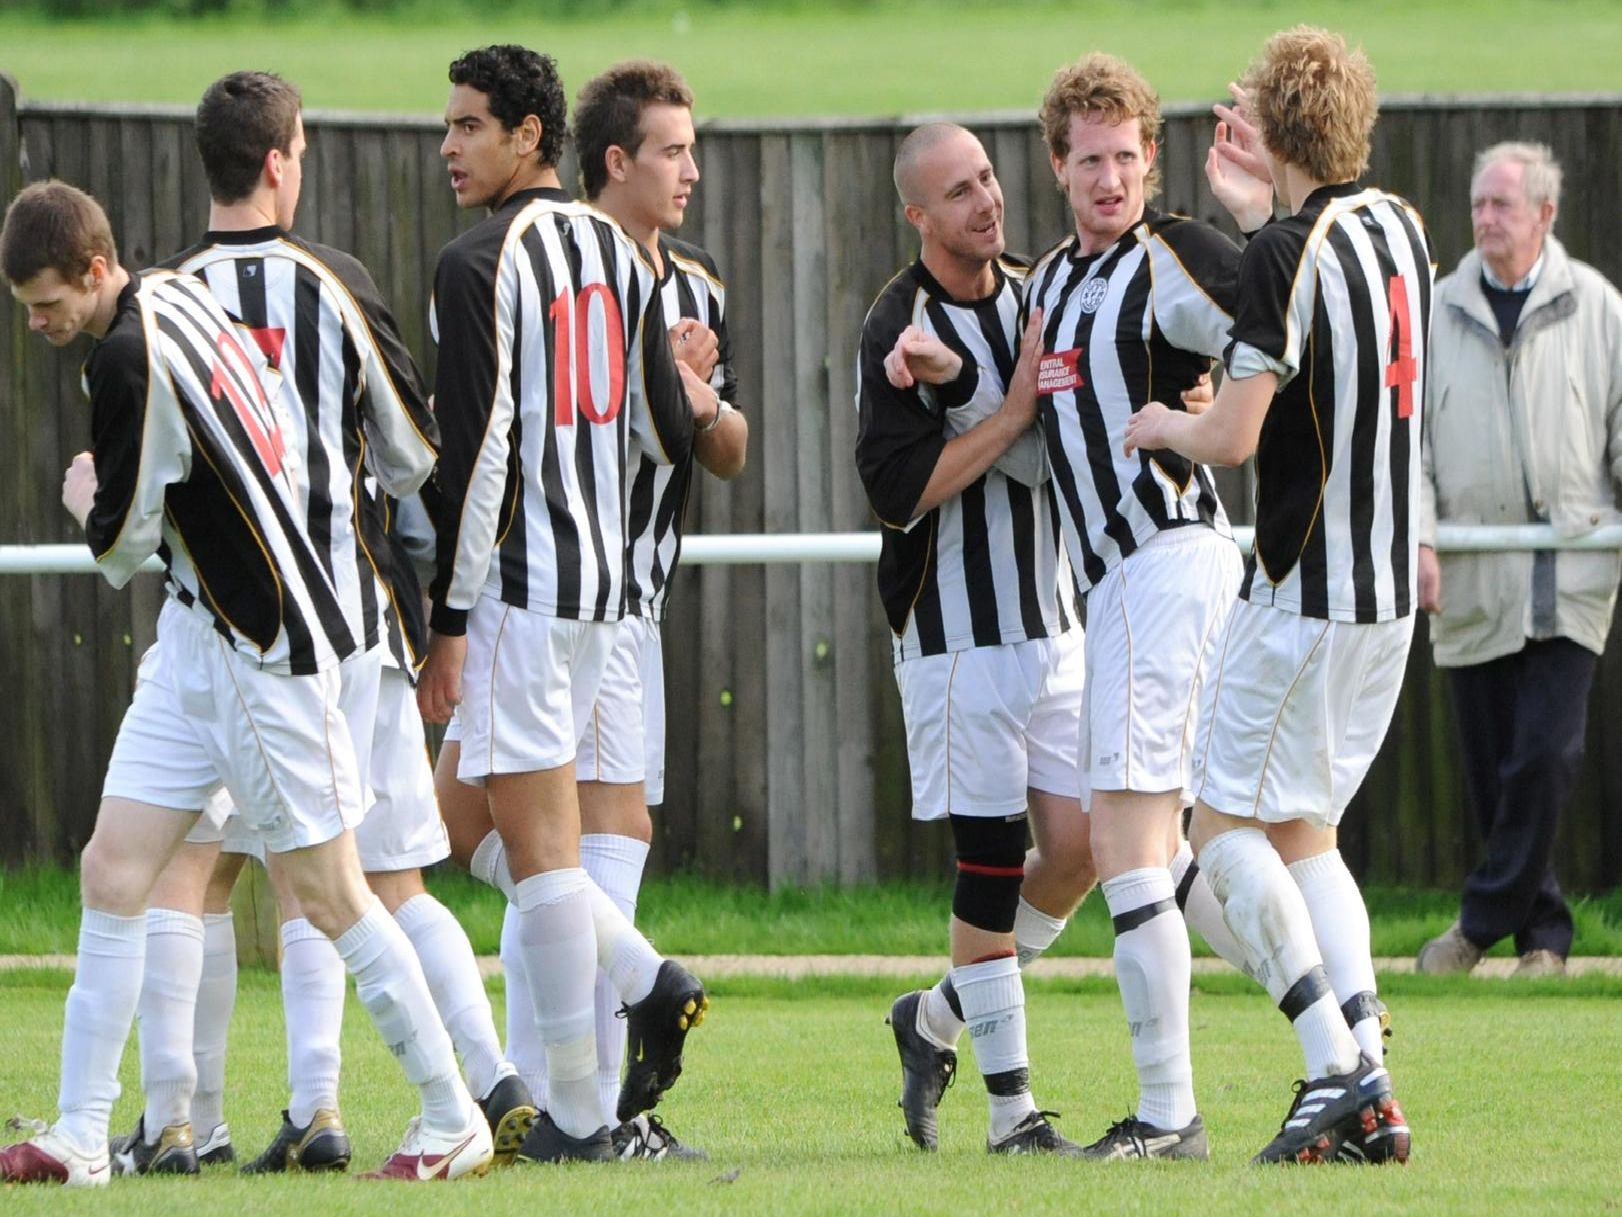 Celebrating a goal against Bexhill in 2010